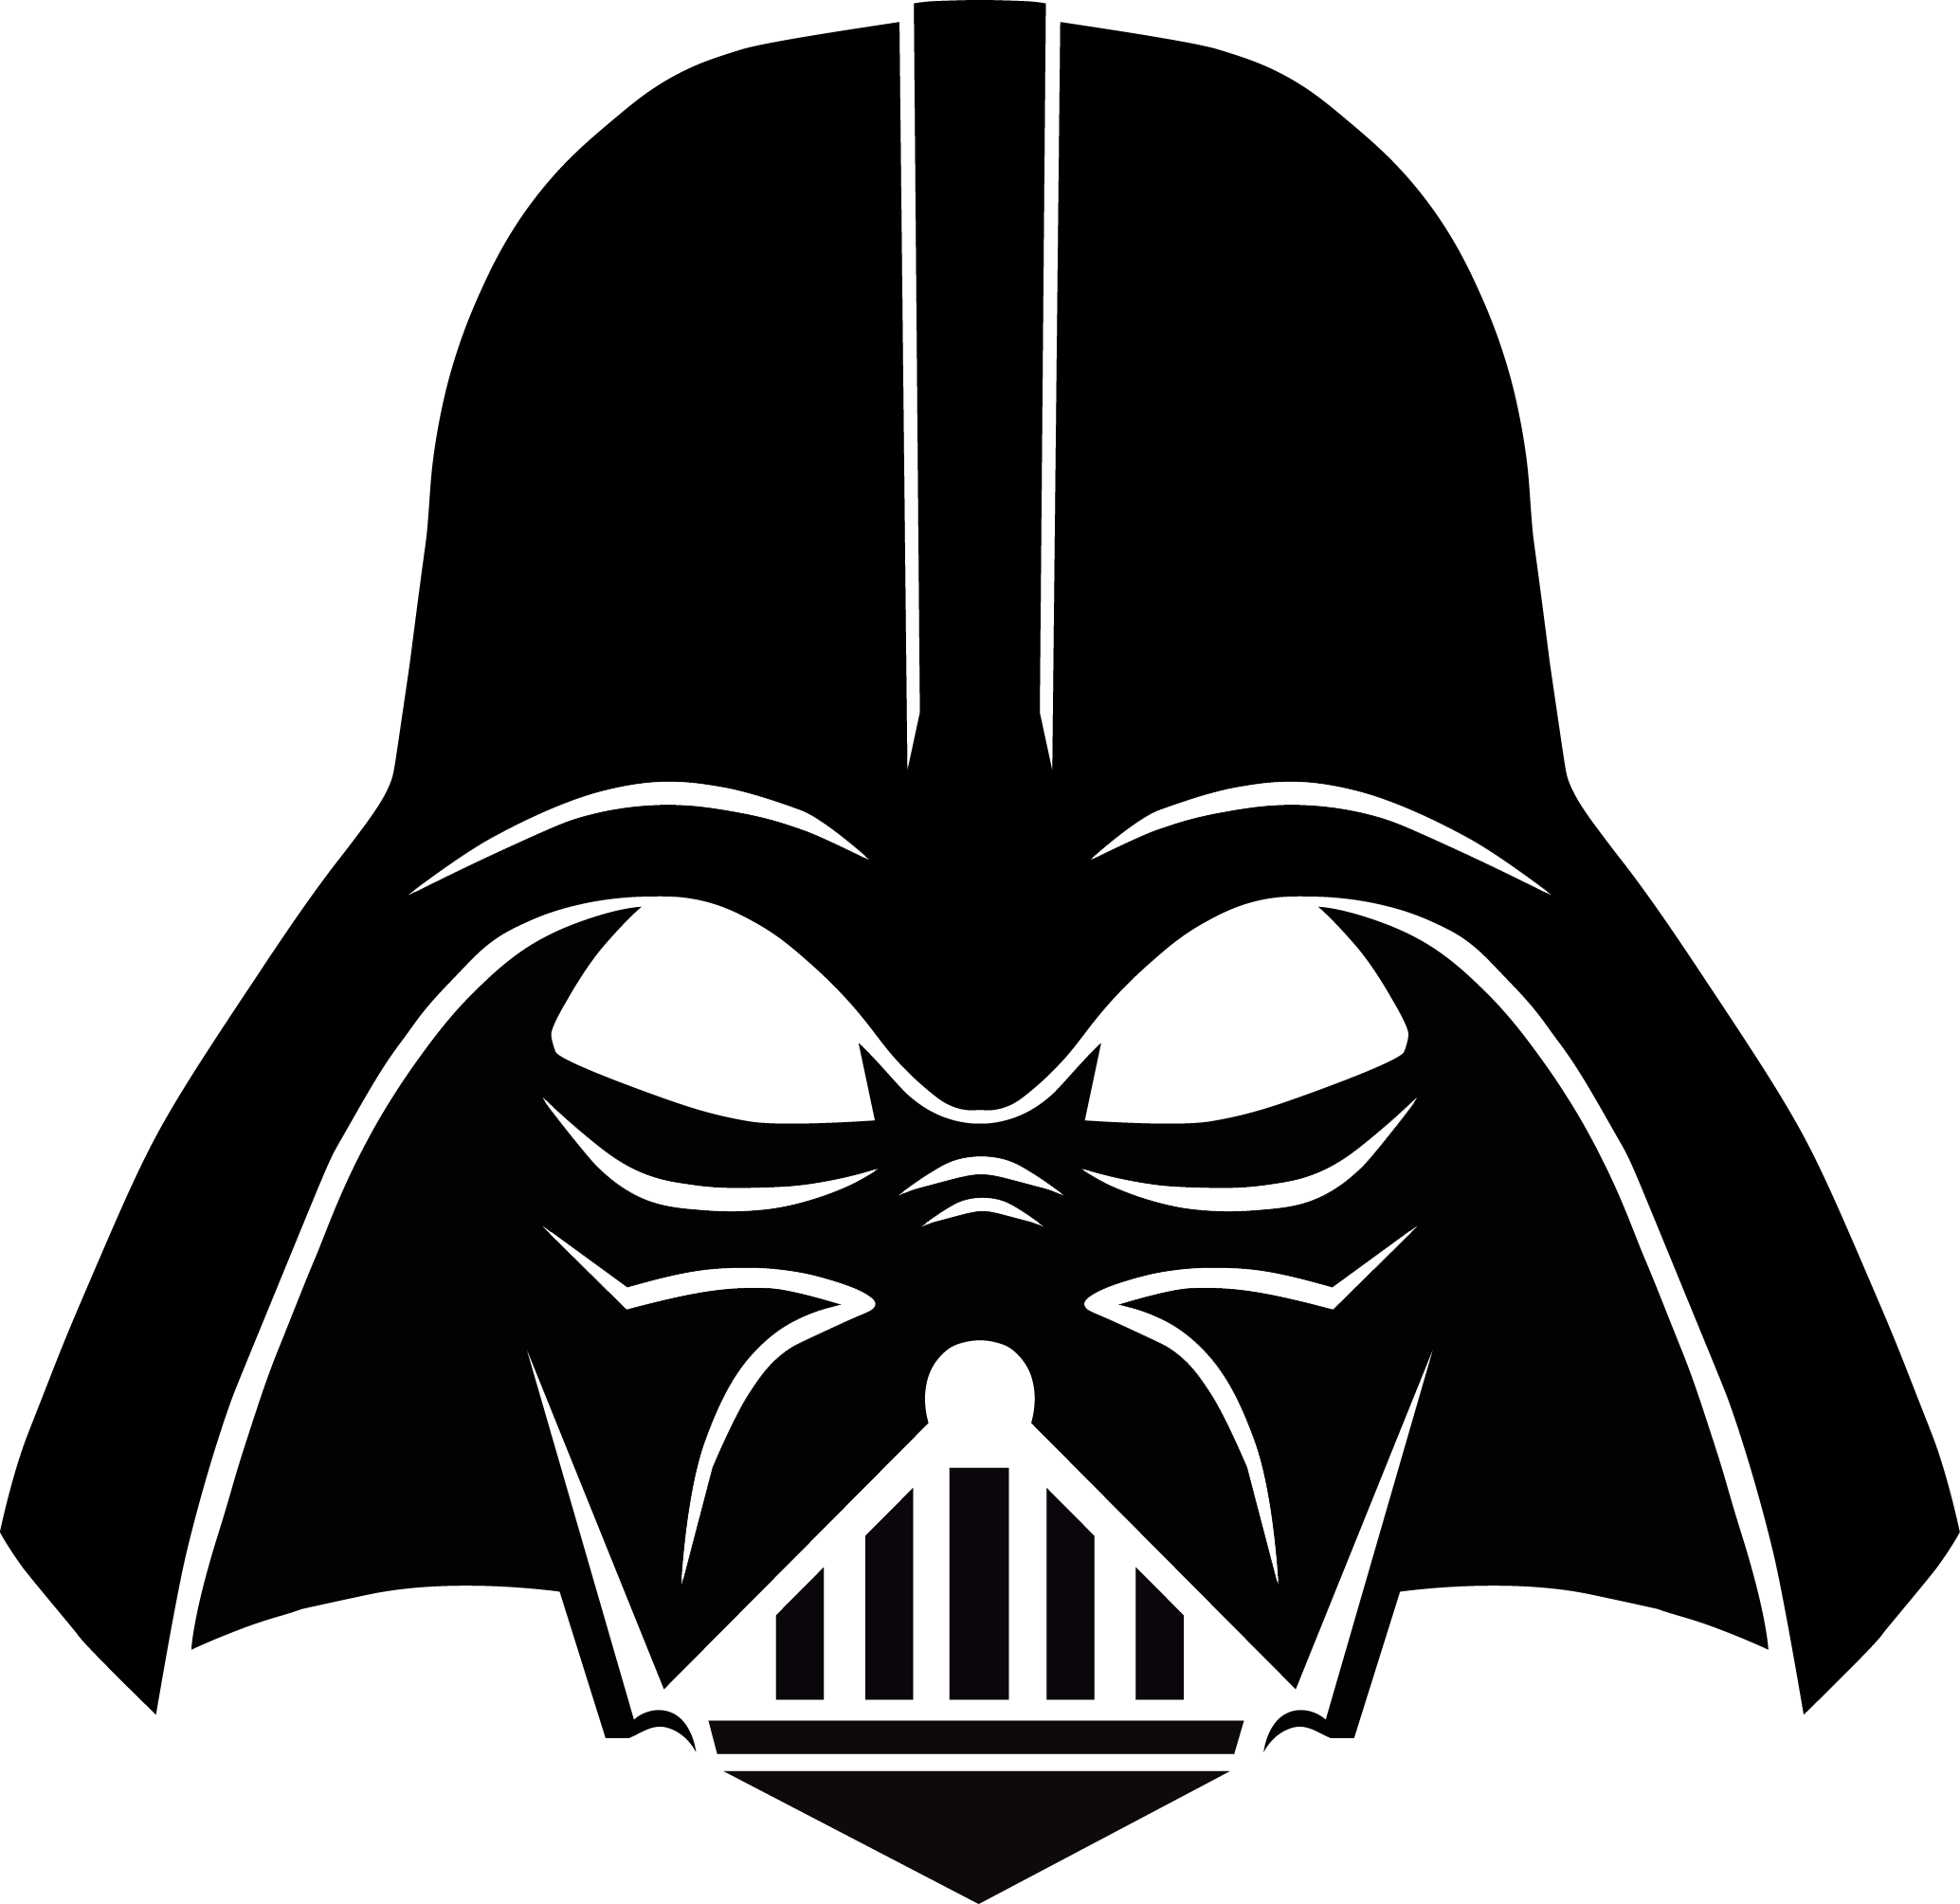 Stencil free download pinterest. Darth vader clipart picture transparent stock